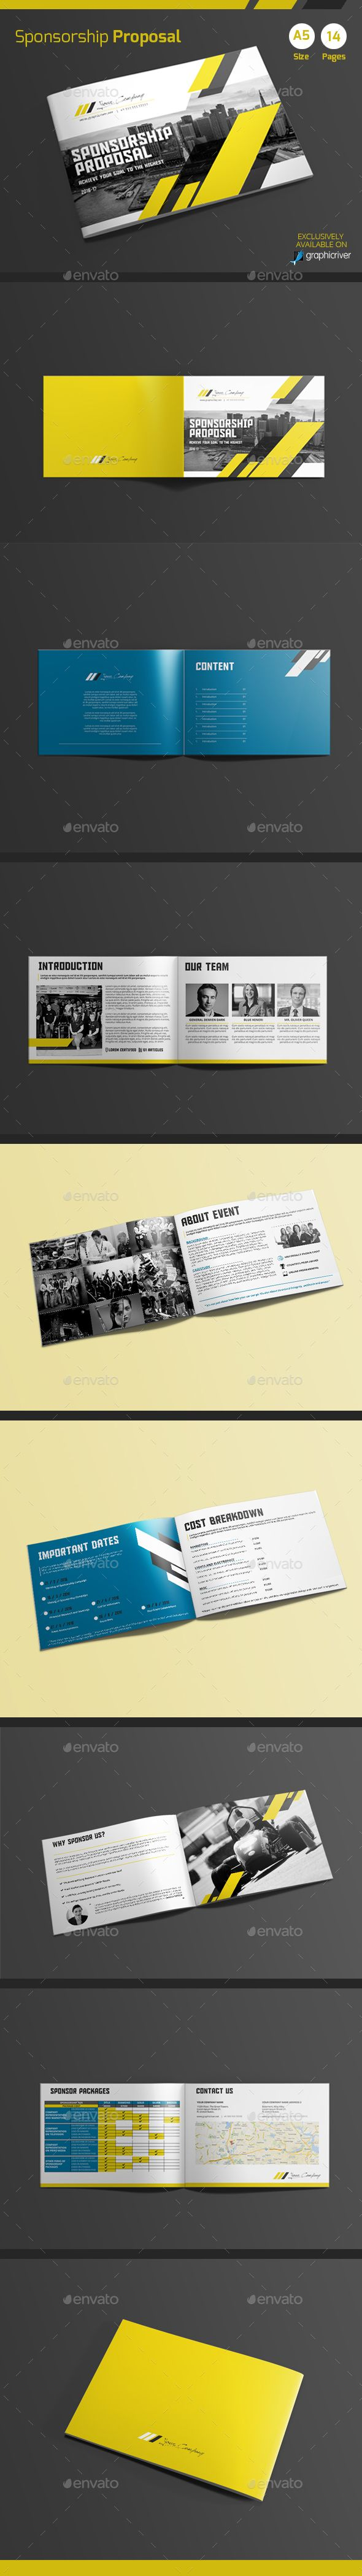 Sponsorship Proposal Template InDesign INDD Download here